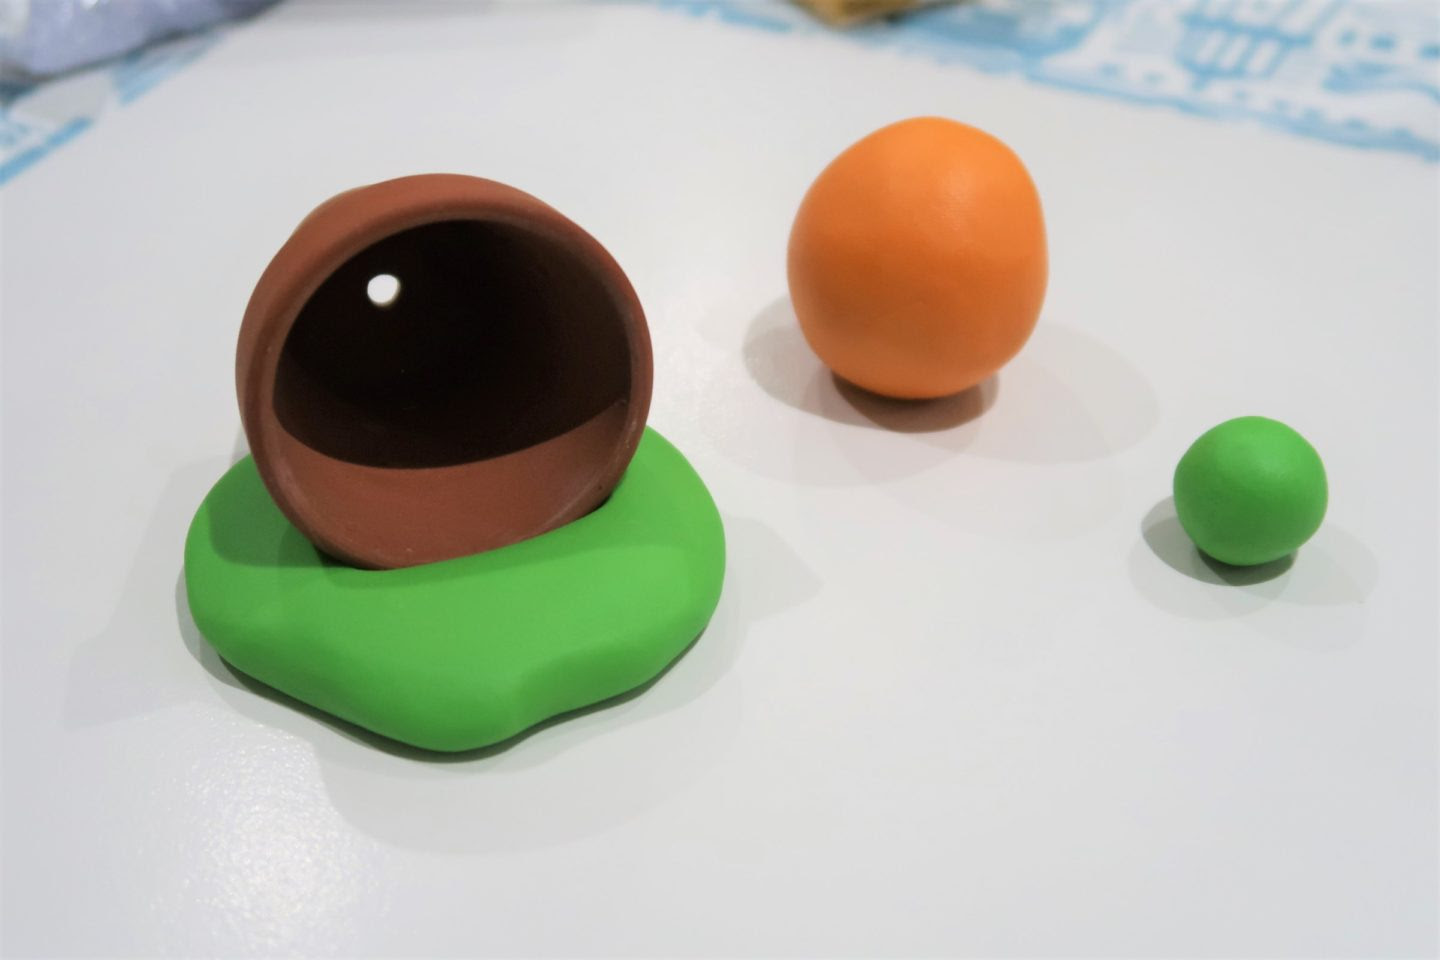 Fimo plant pot and carrot.